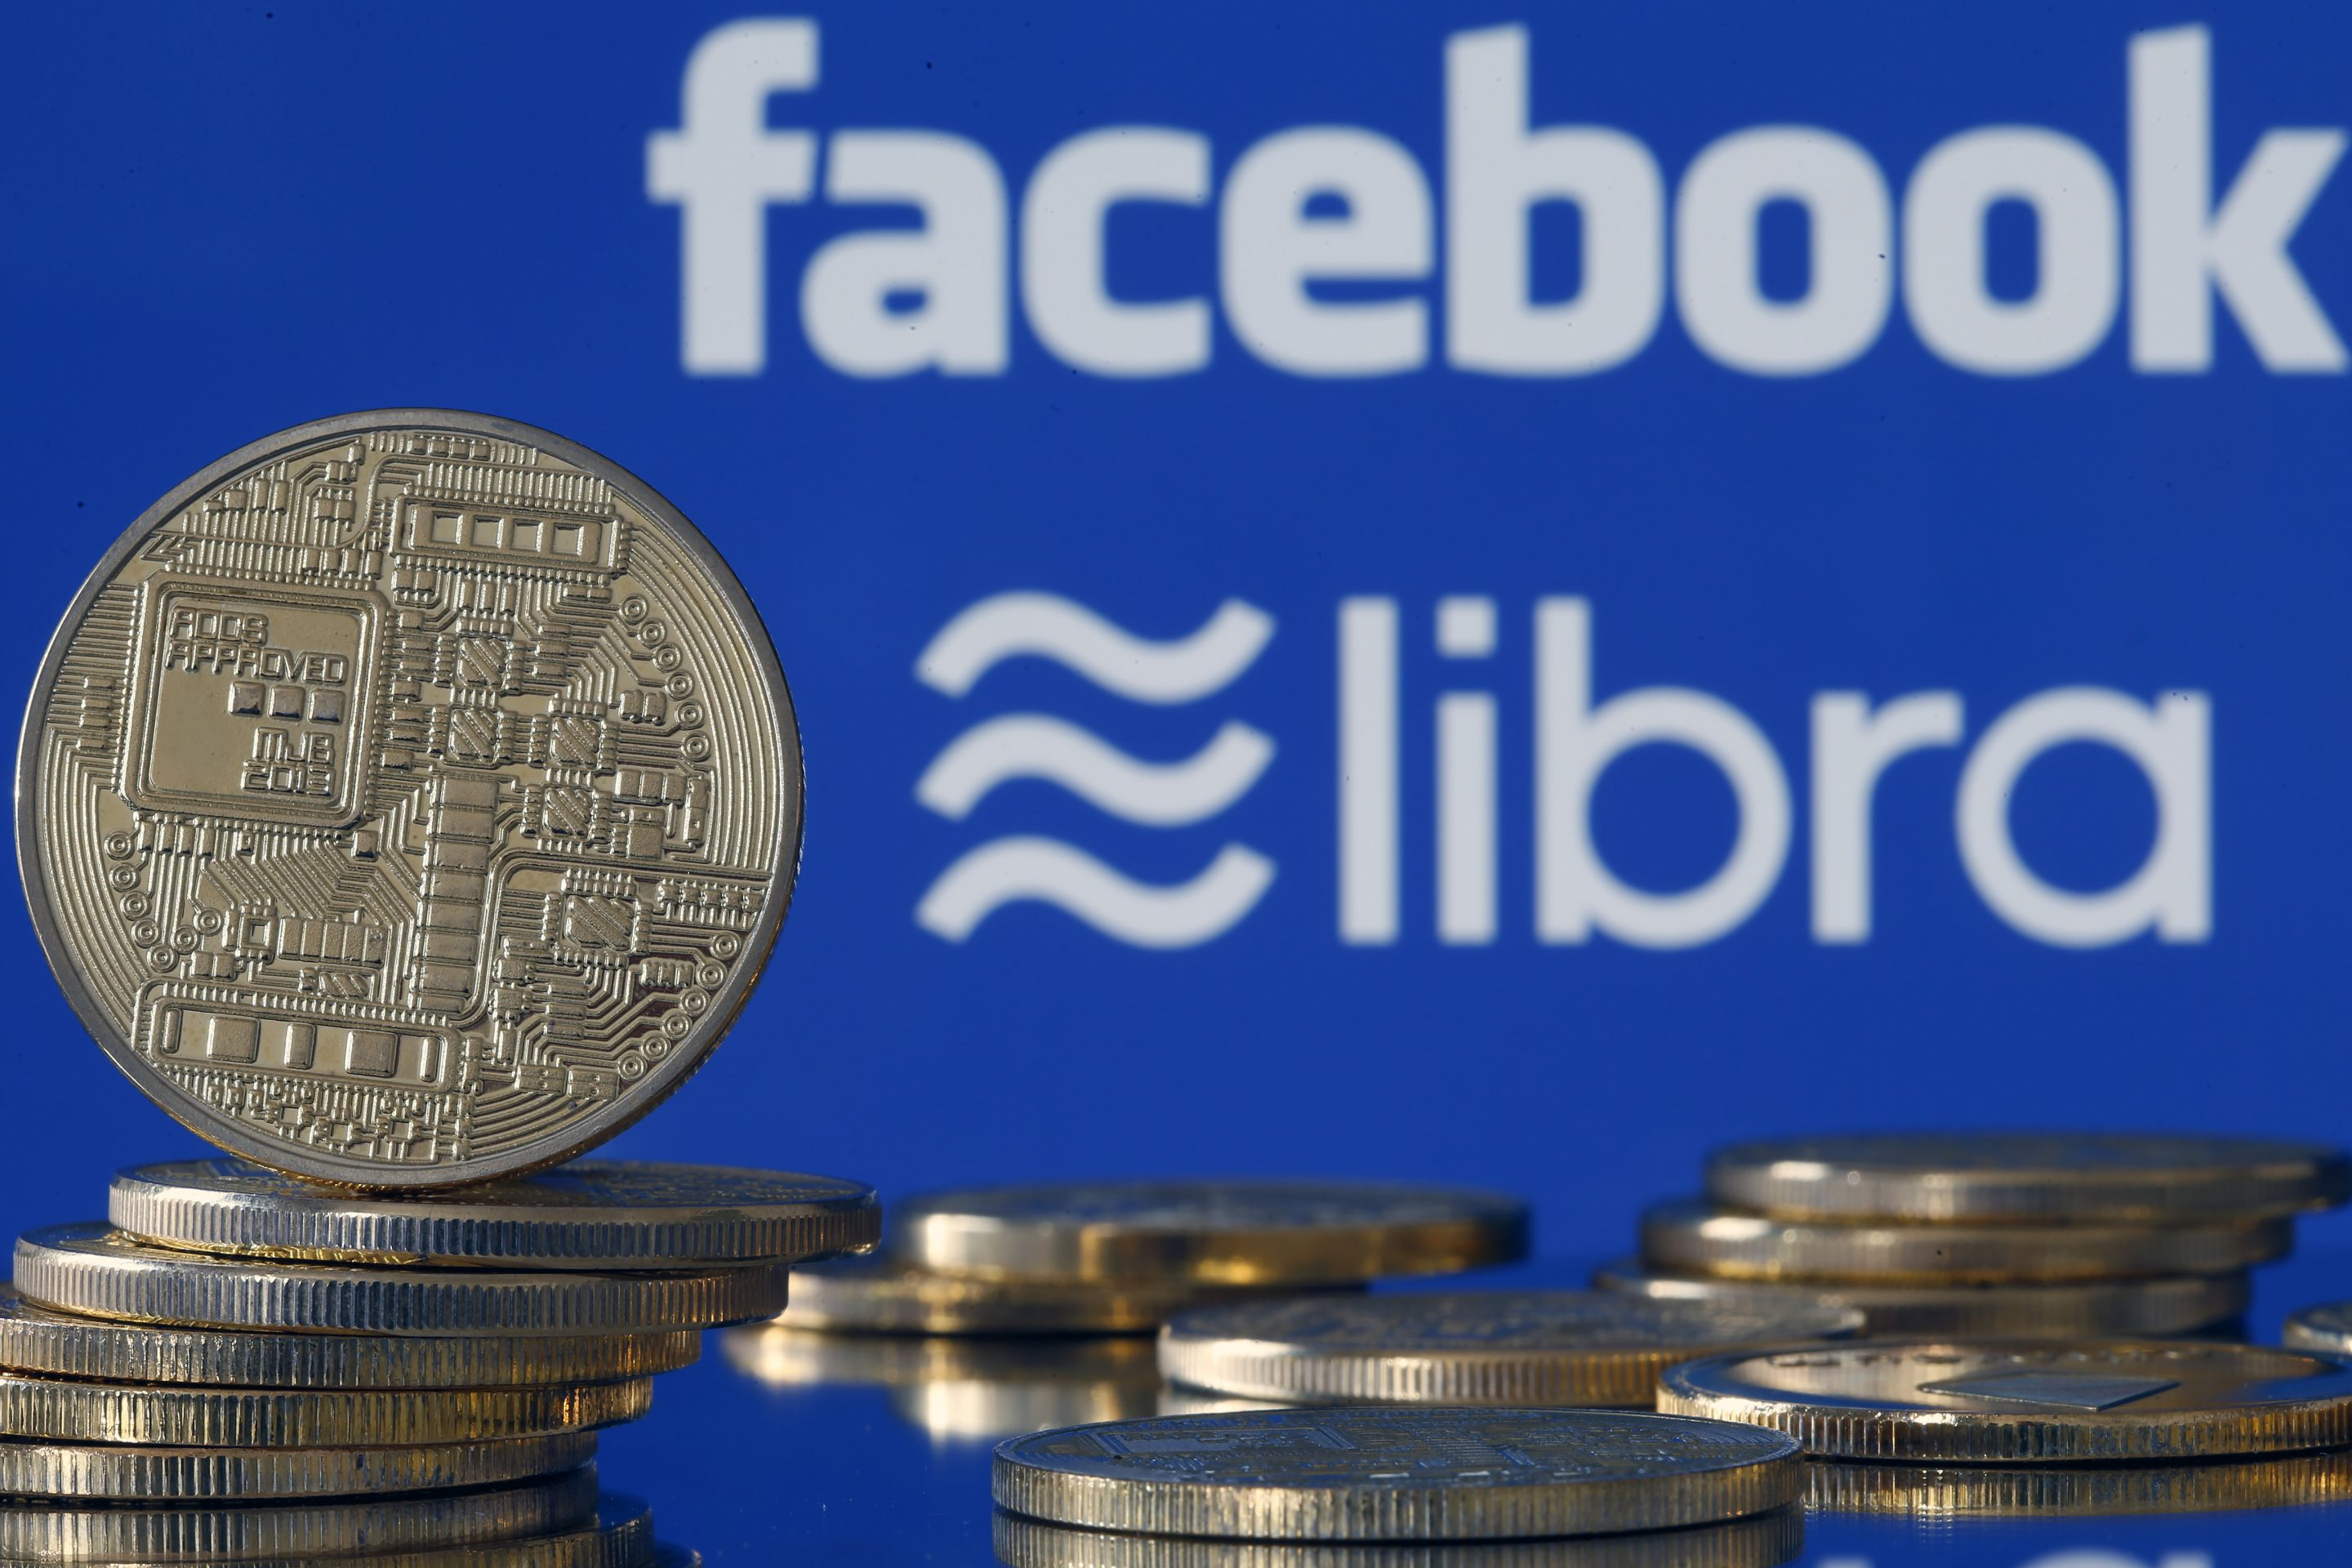 A visual representation of Facebook's Libra digital cryptocurrency.